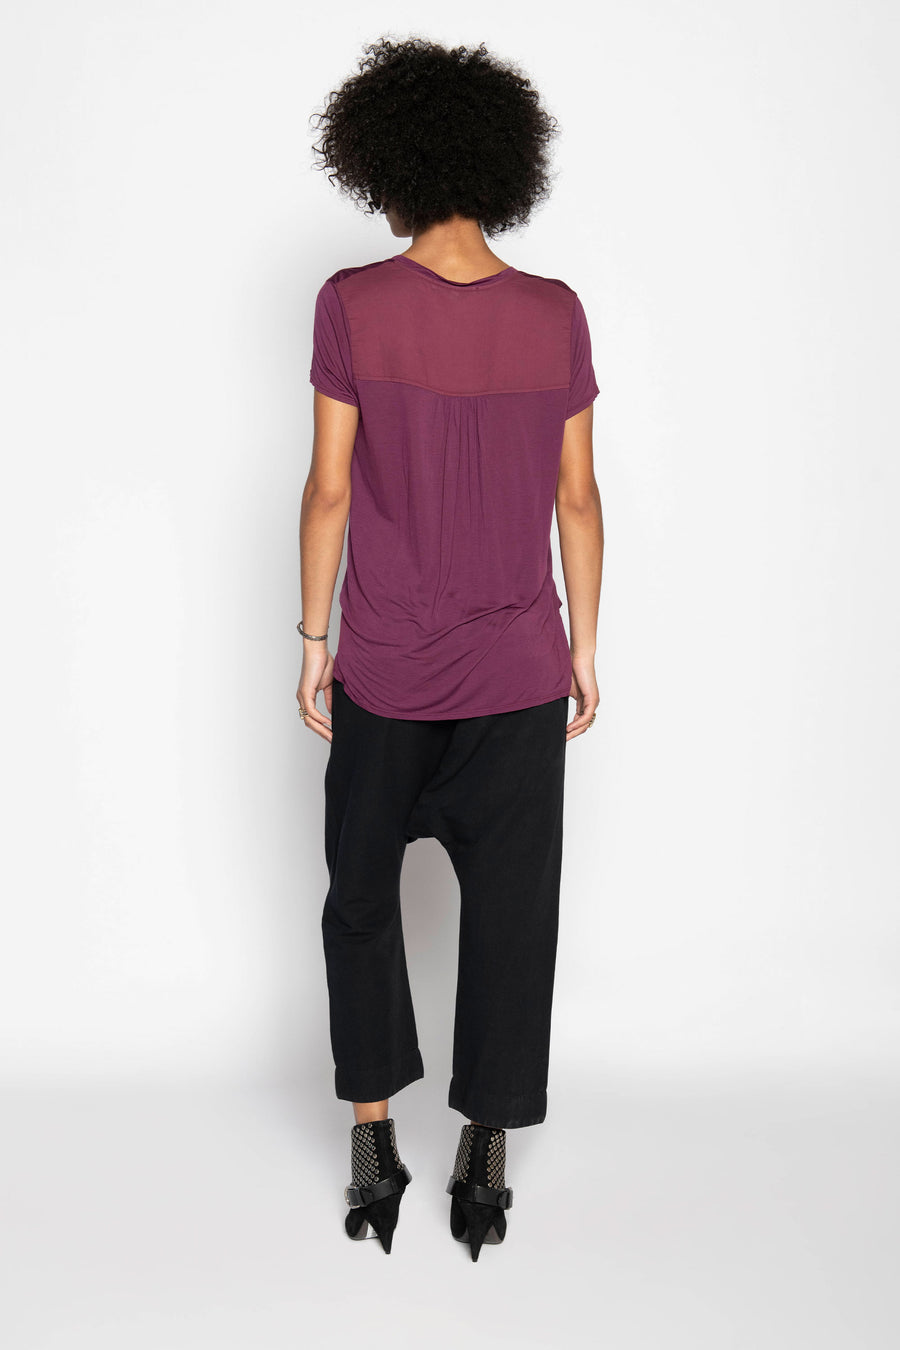 4 DIRECTIONS V-NECK TEE SHIRT MULBERRY